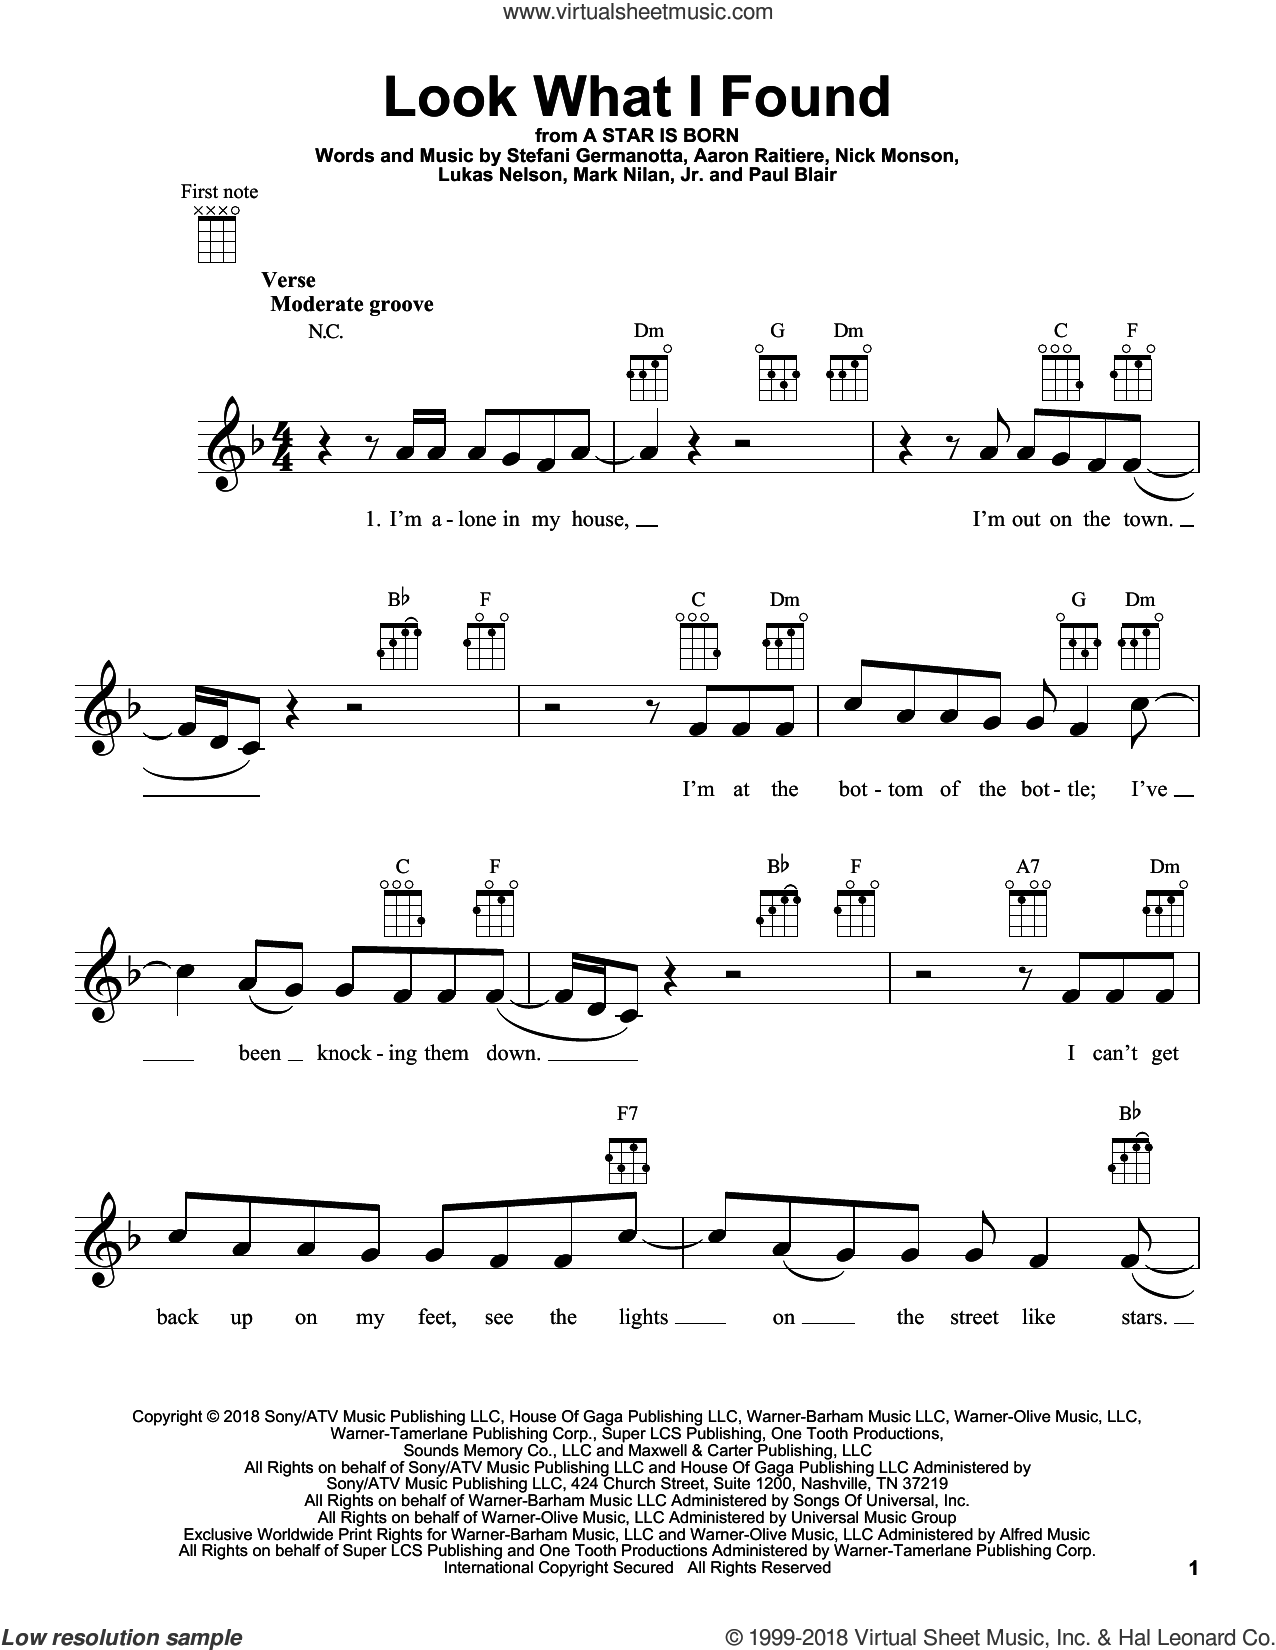 Look What I Found (from A Star Is Born) sheet music for ukulele by Lady Gaga, Bradley Cooper, Lukas Nelson, Aaron Raitiere, Mark Nilan Jr., Nick Monson and Paul Blair, intermediate skill level